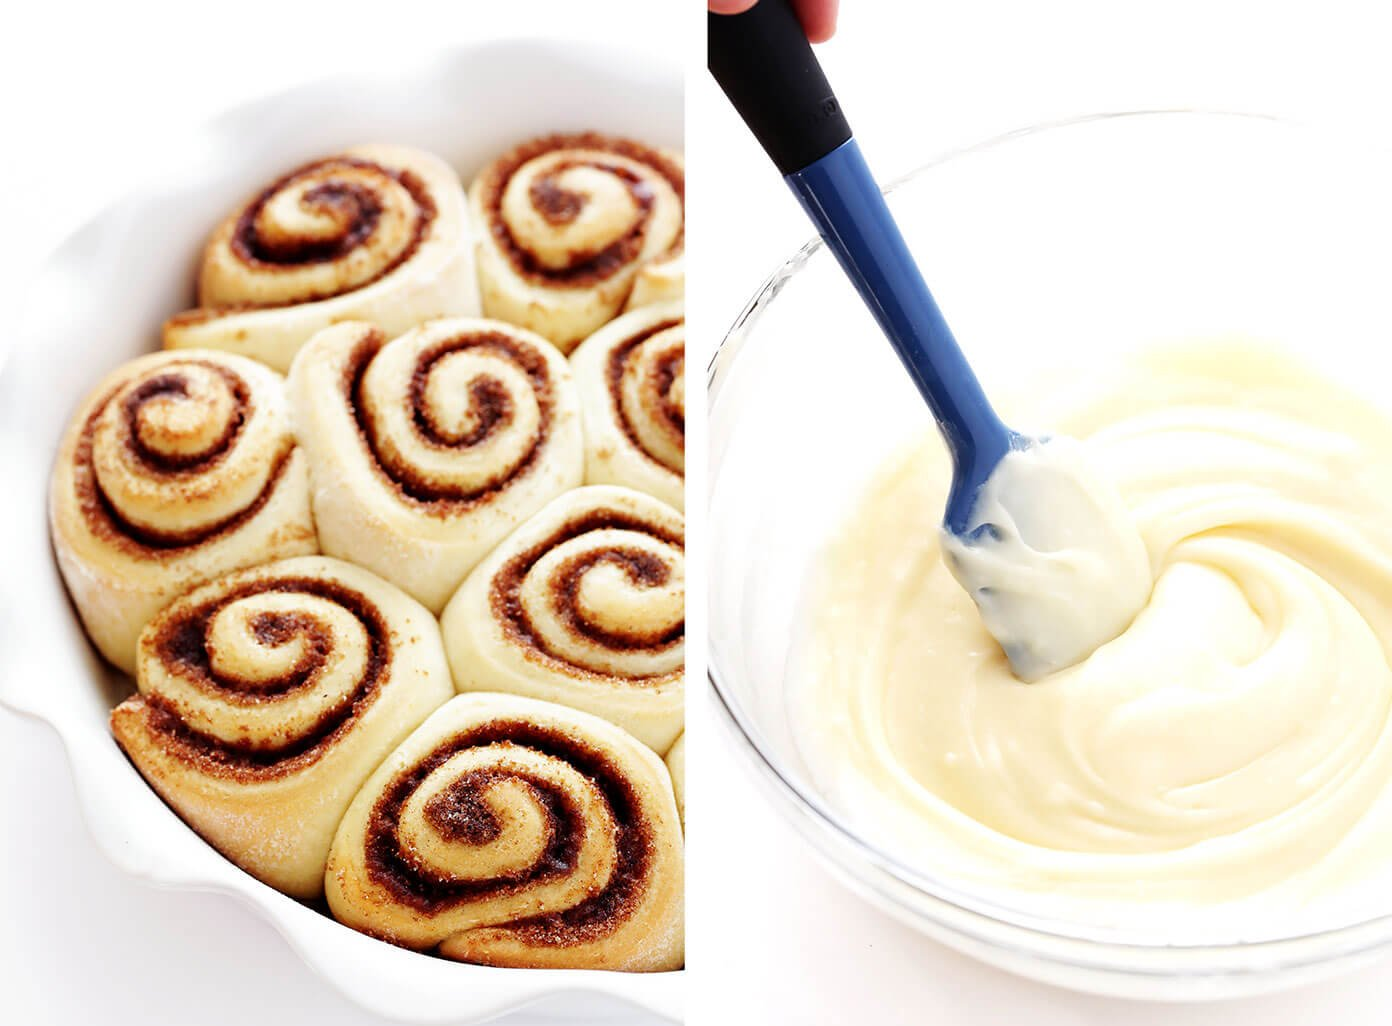 Homemade Cinnamon Roll Icing